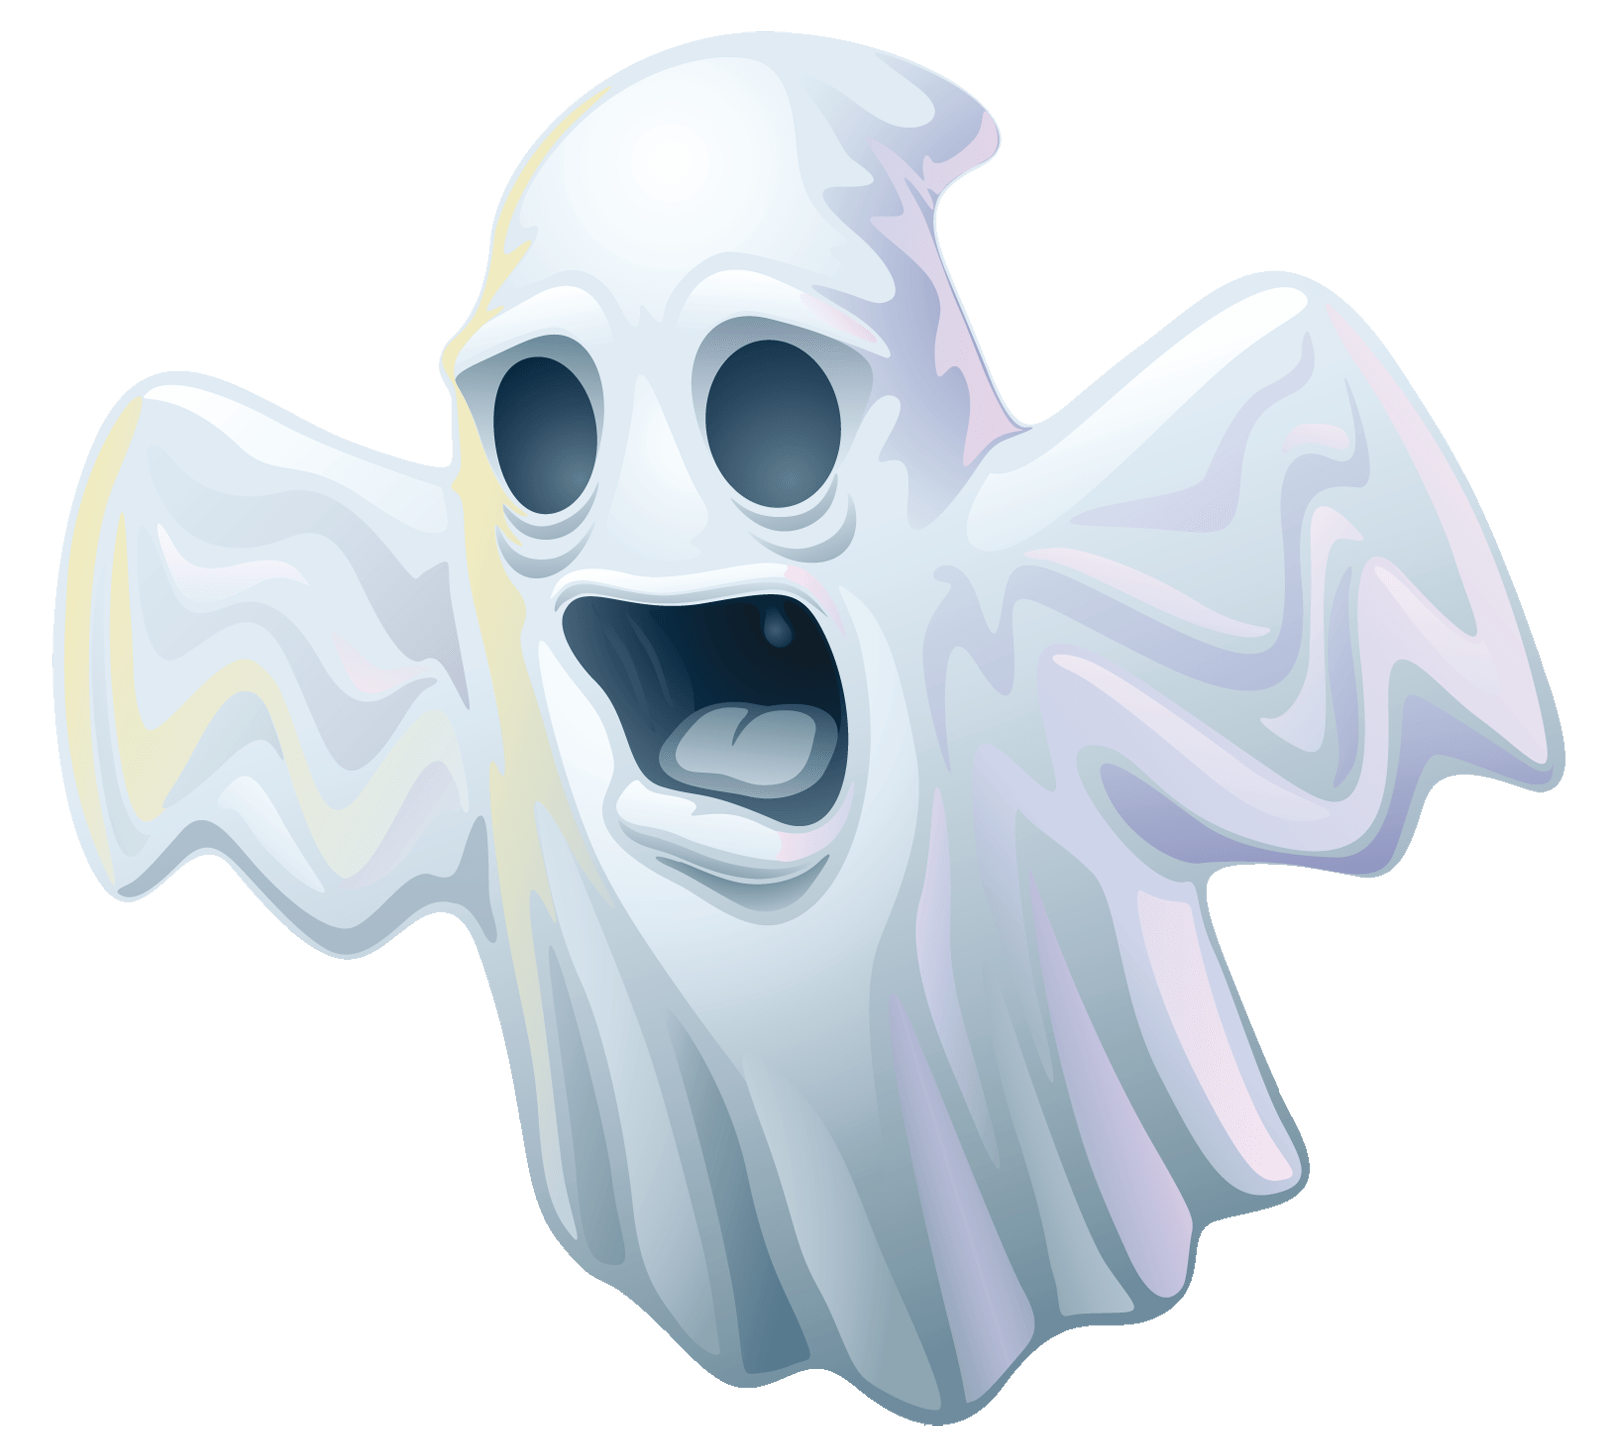 Clipart halloween spooky. Ghost transparent png stickpng